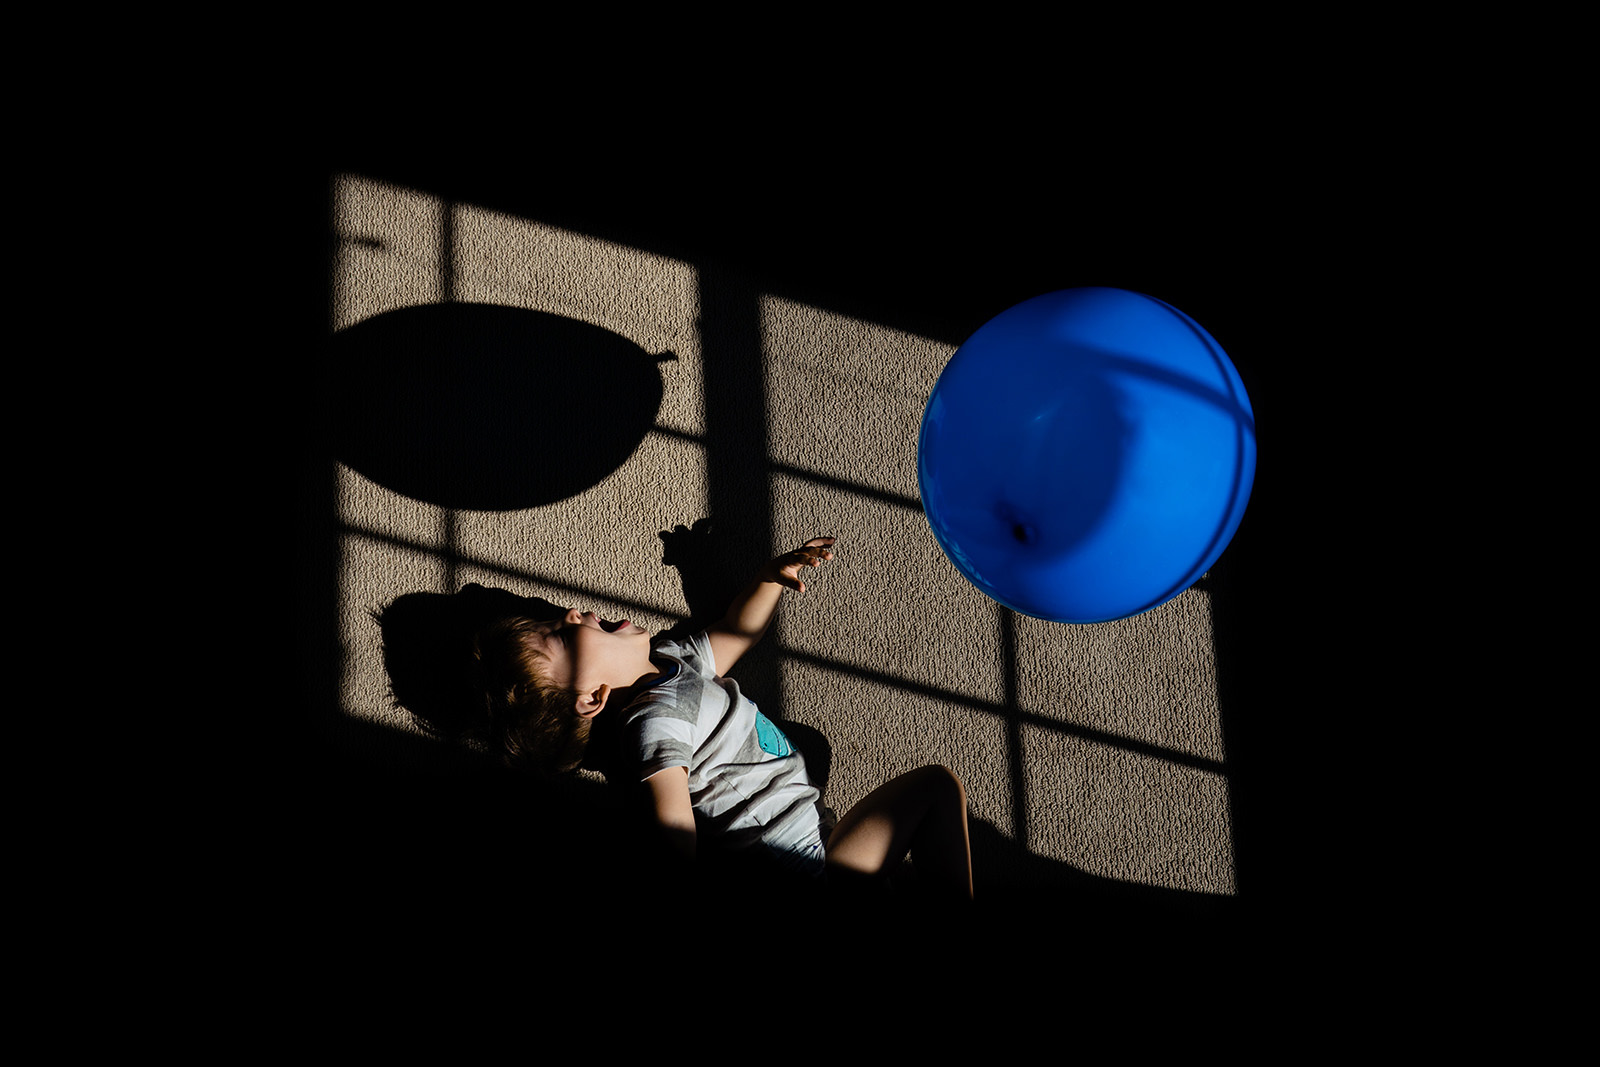 Toddler plays with balloon n dramatic window light during documentary photo session